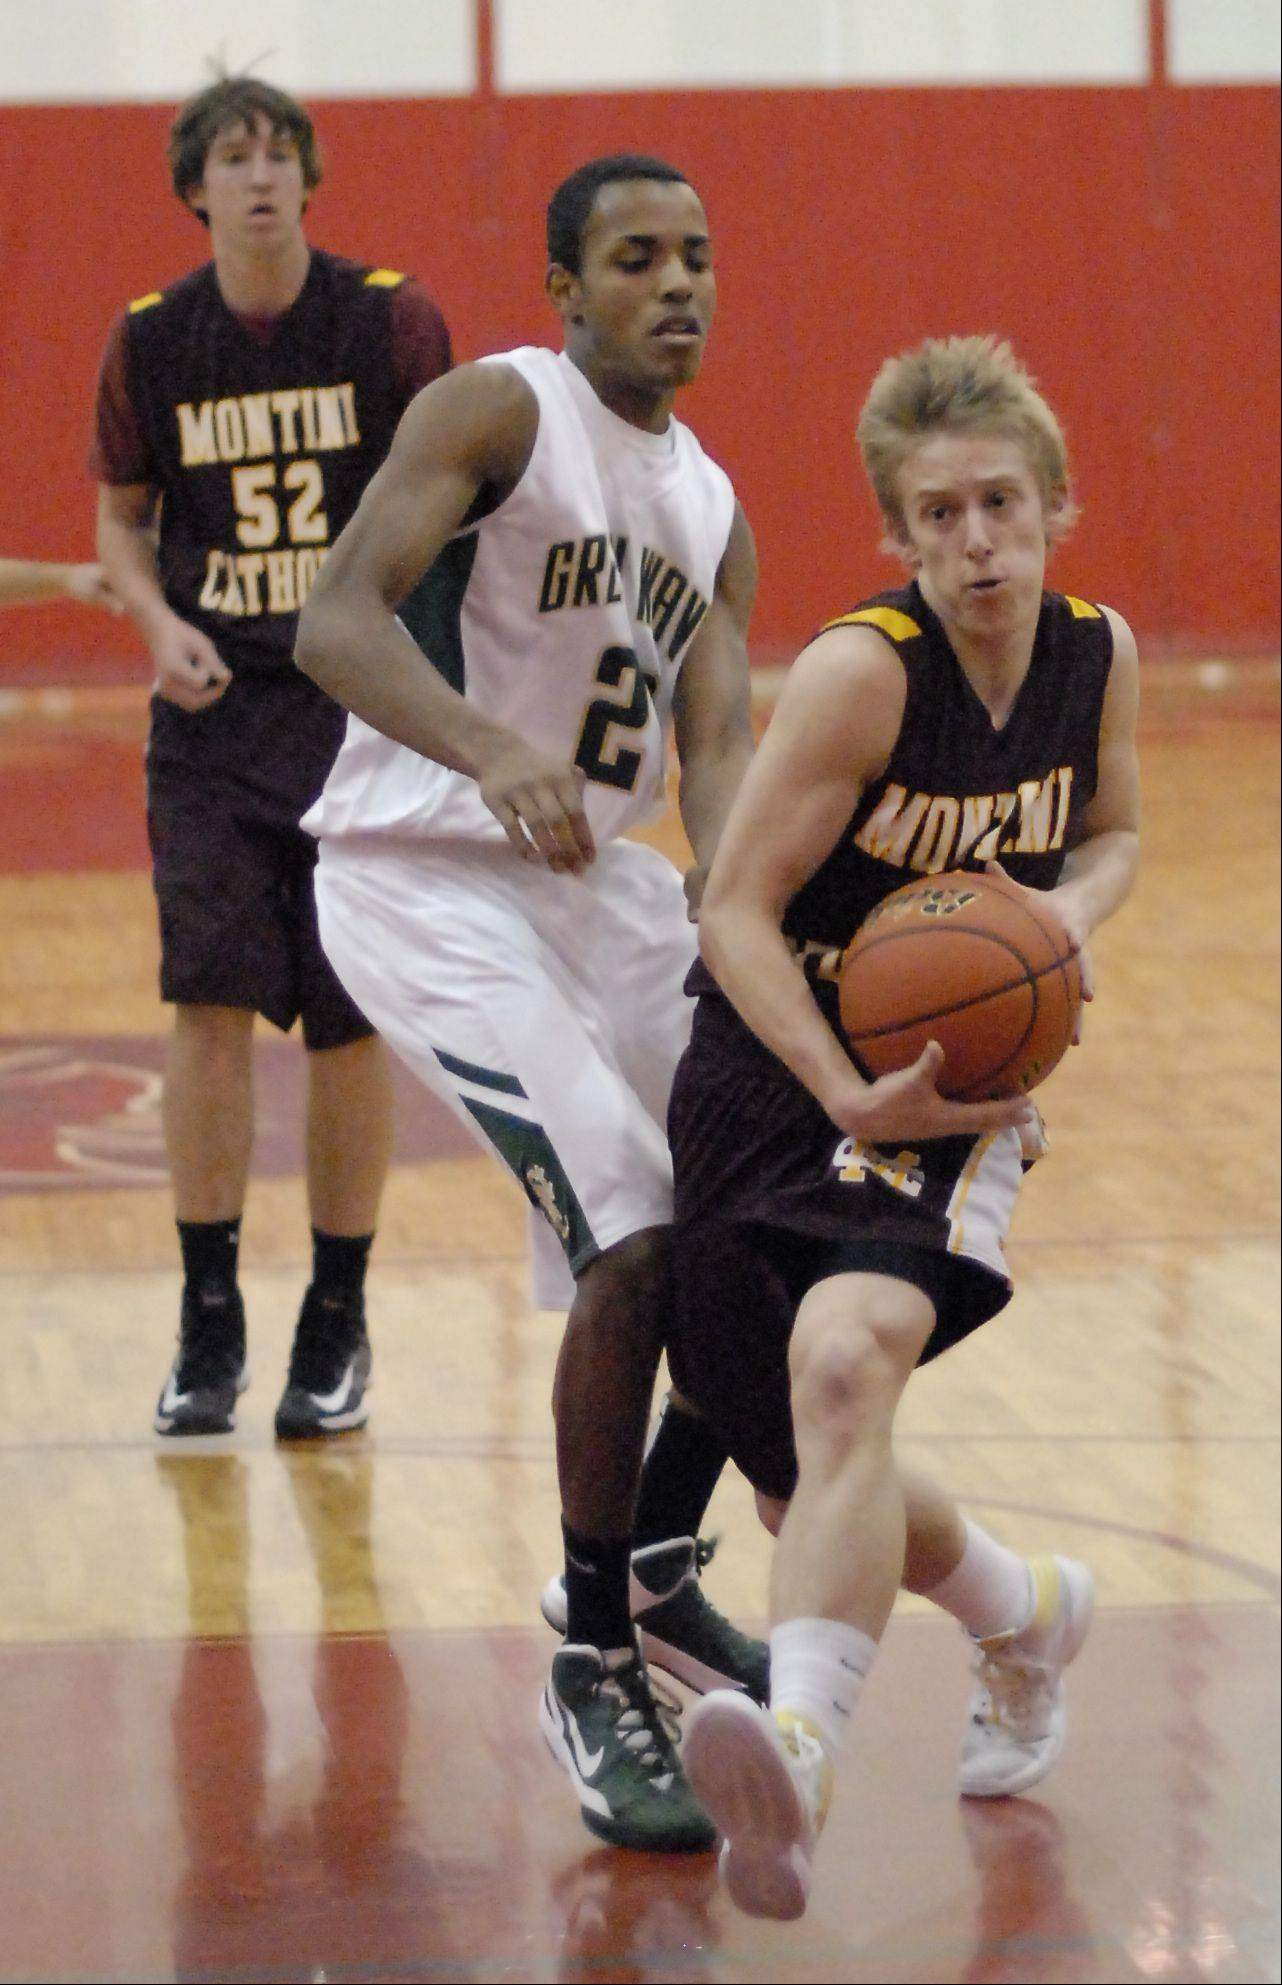 Images from the St. Edward vs. Montini boys basketball game Wednesday, November 28, 2012.